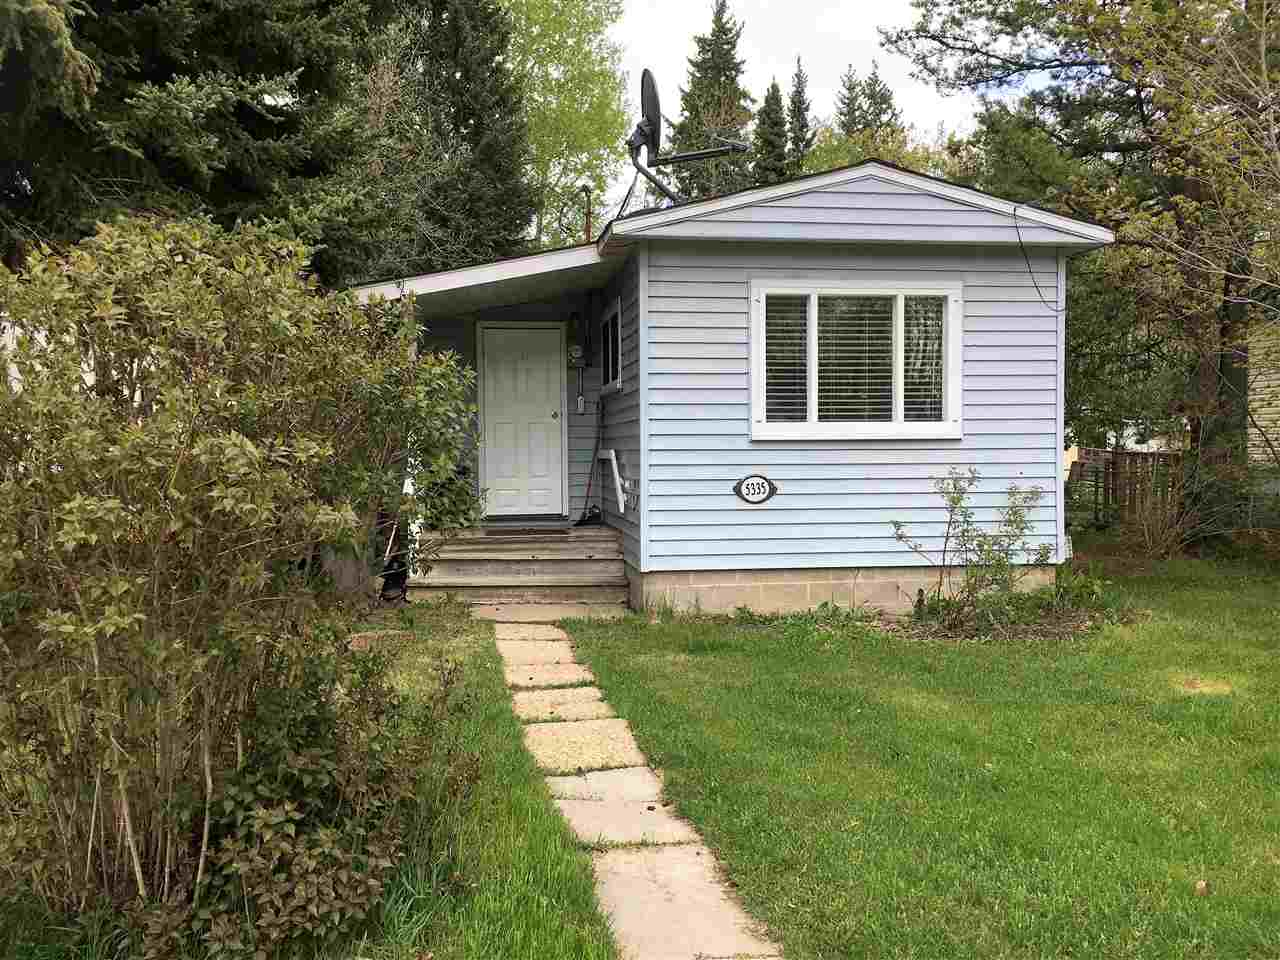 Upgraded and cozy 1 bedroom bungalow backing Breton golf course! Big private backyard on quiet street with room for RV. Many renovations over the past 10 years including bathroom plumbing, fixtures, sub-floor. drywall, trim, flooring, light fixtures and paint. Washer and dryer in partial basement. Move in ready and perfect for singles, couples or revenue property.